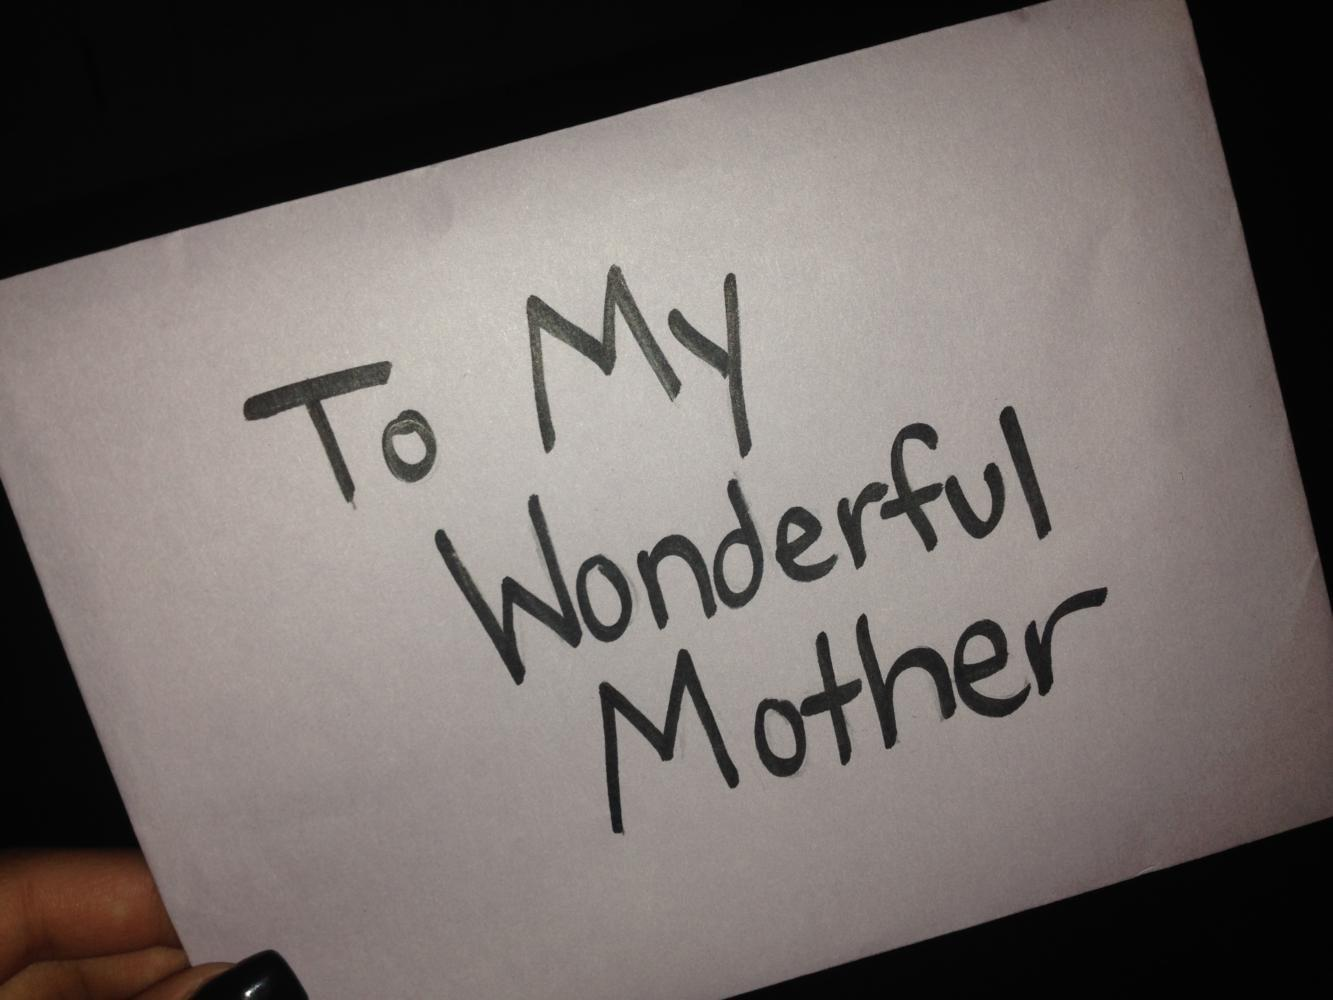 Children+often+show+their+appreciation+for+their+mothers+by+getting+them+a+gift+or+making+homemade+cards.